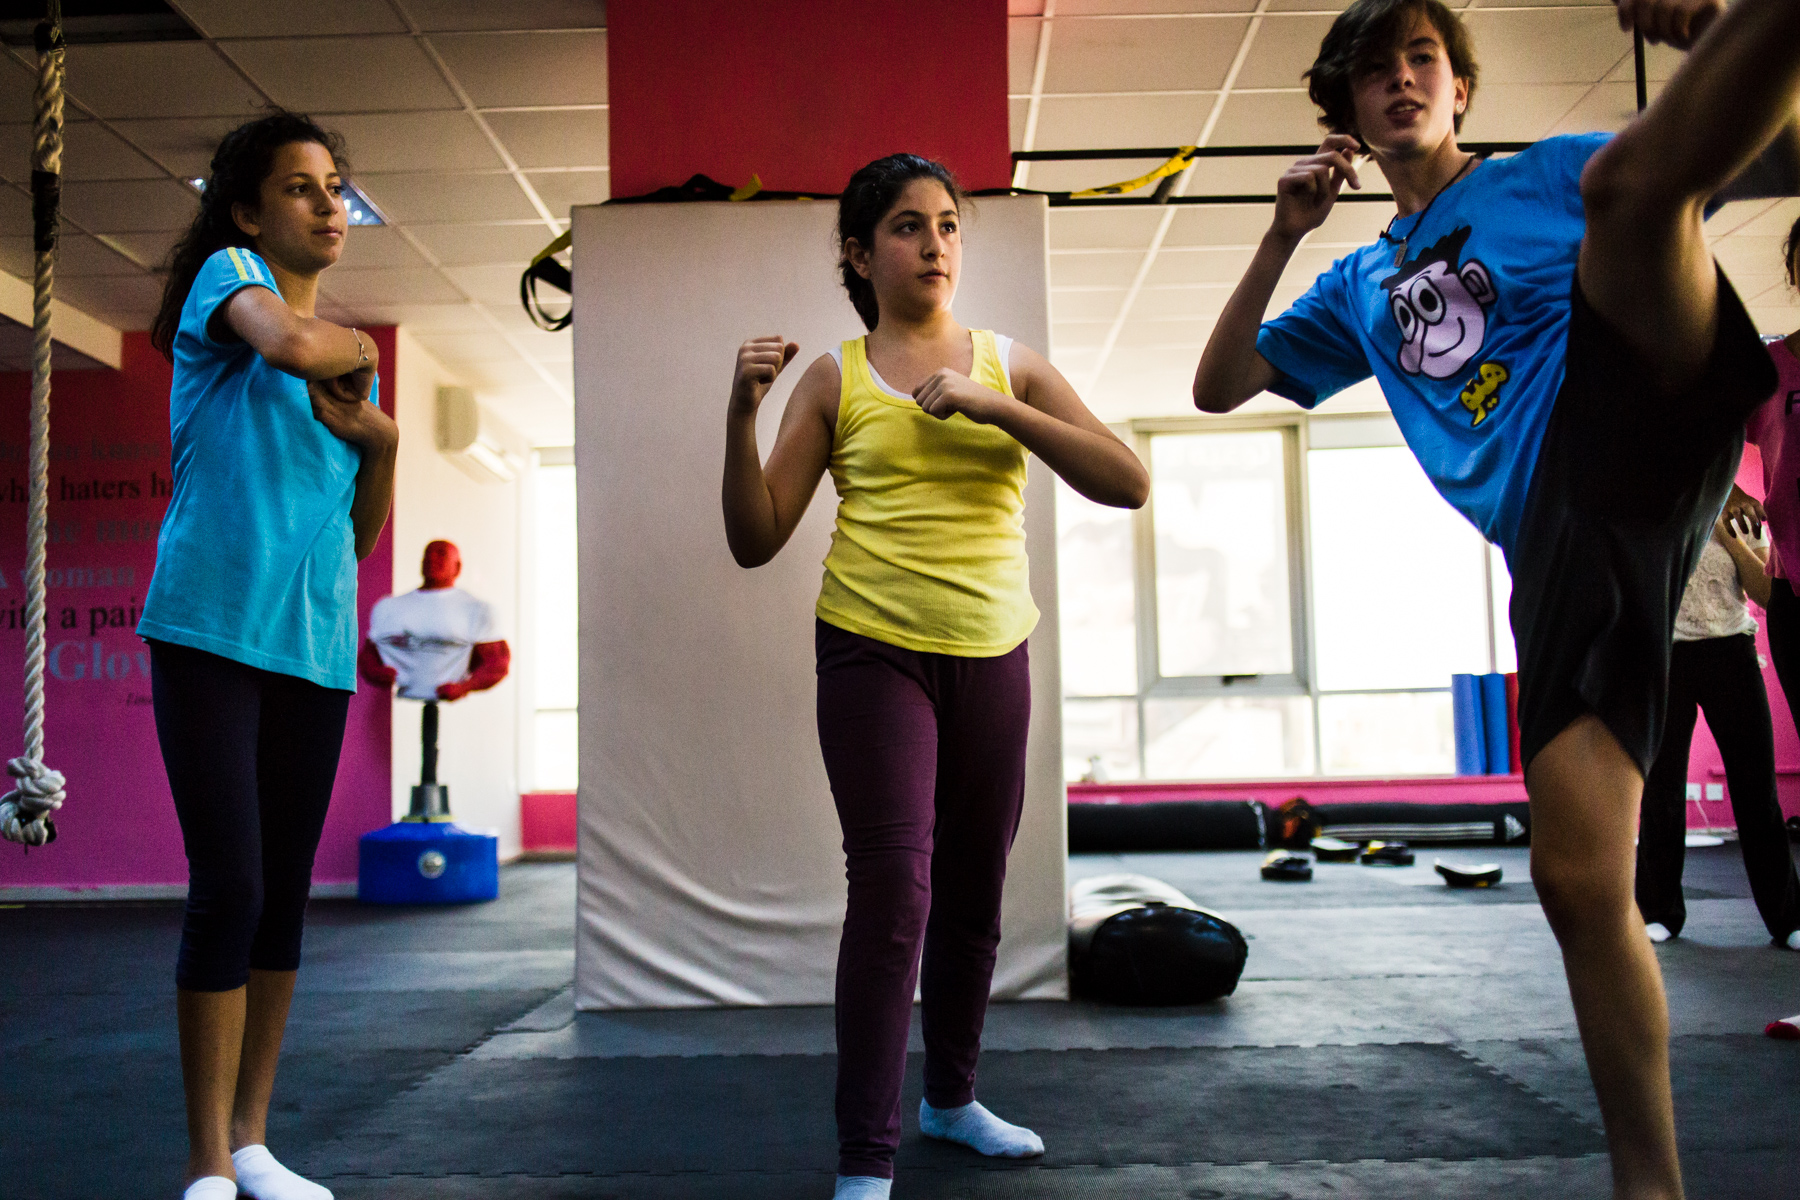 Reem Habib, Sana Kayyali, and Selina Hajarat practice their moves in front of a mirror during class at She Fighter in Amman, Jordan, on August 21, 2015. The She Fighter studio was founded by Lina Khalifeh, and offers self defense classes to young women to protect against harrassment.